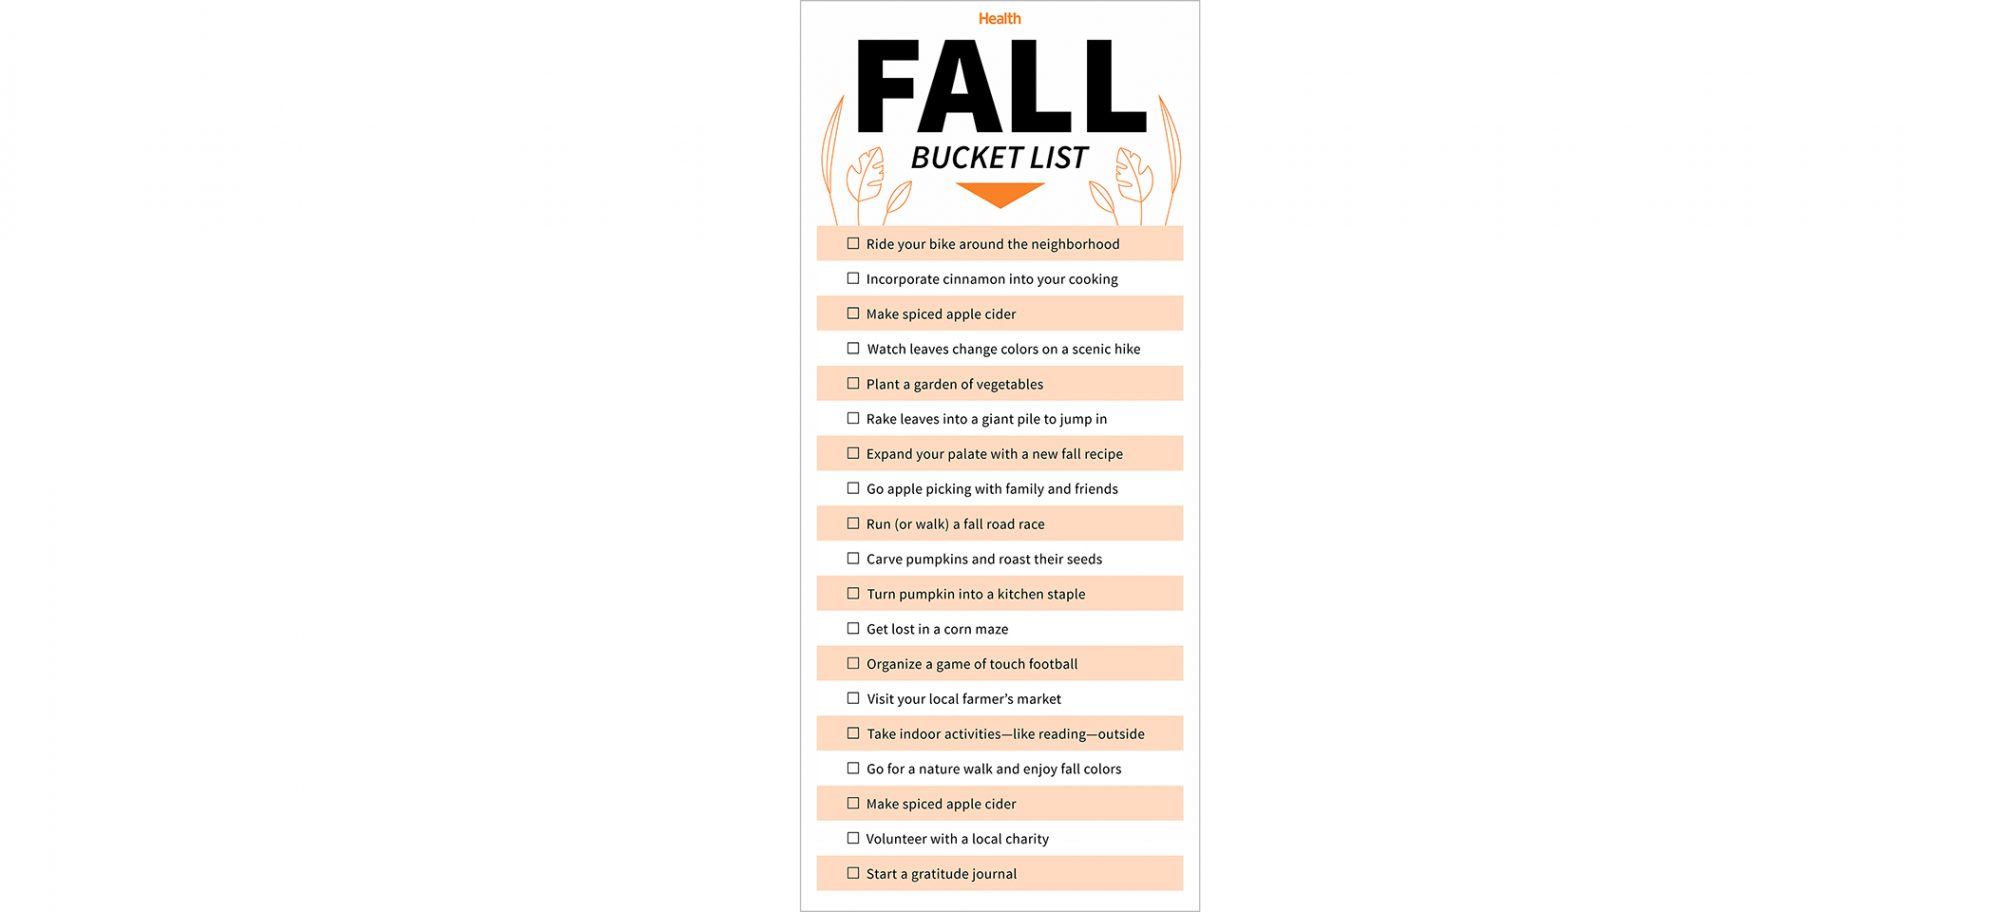 health-fall-bucketlist-infographic-extended